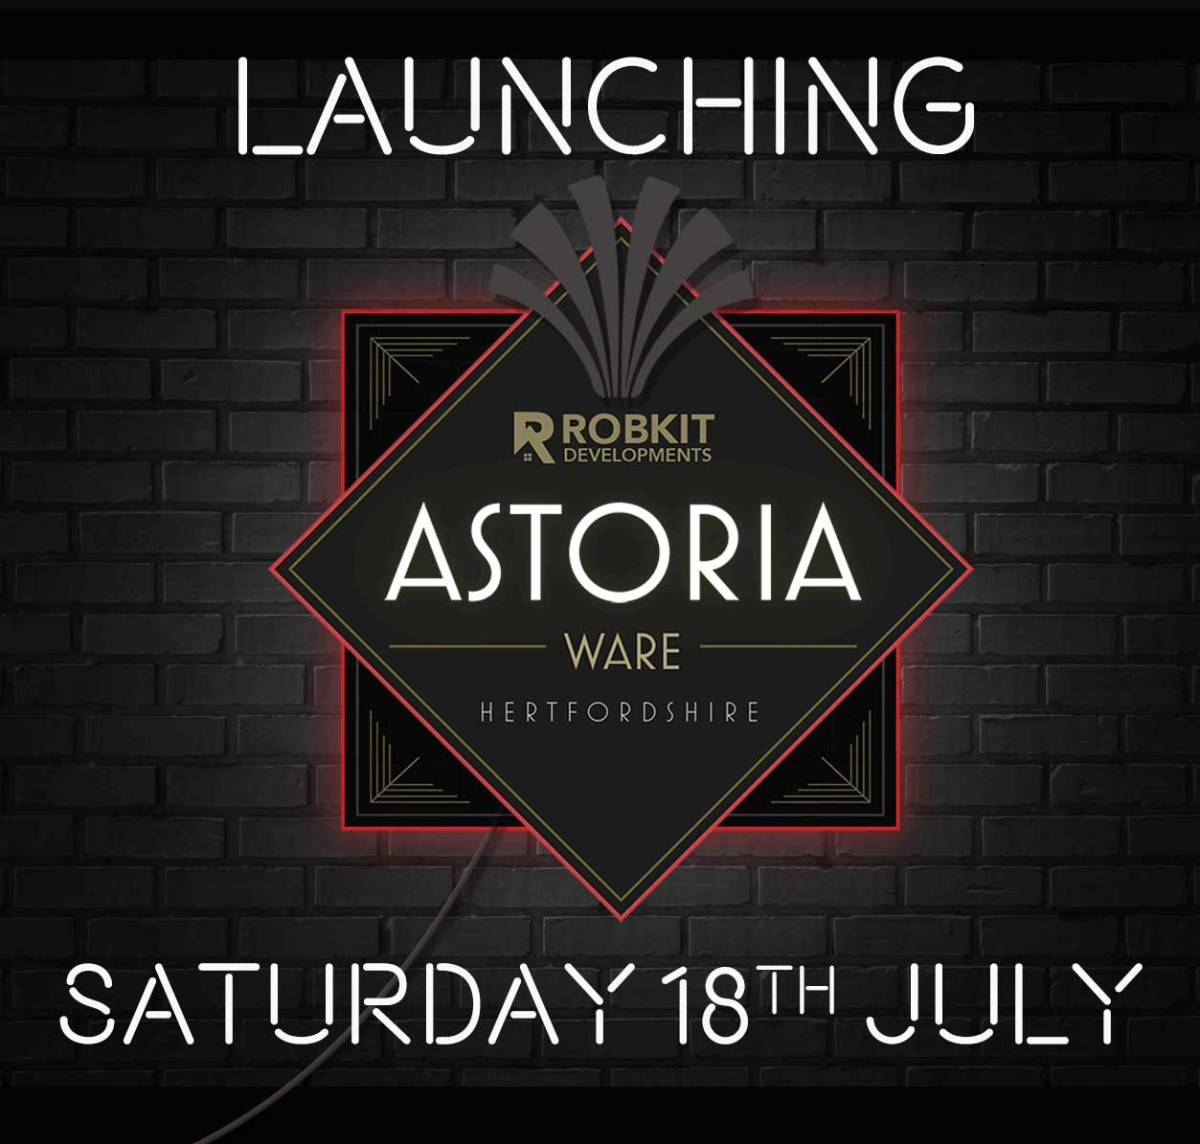 launching saturday 18th July